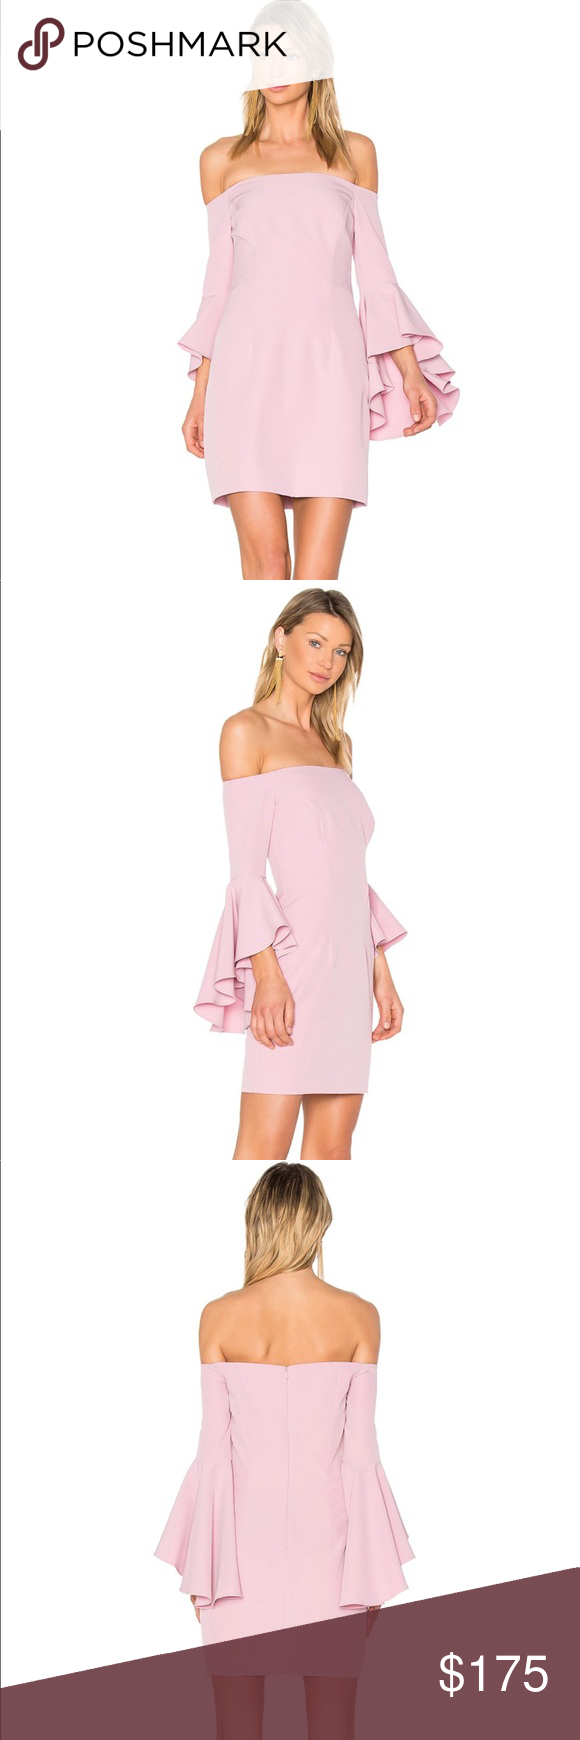 a09213fdfe Milly Selena Mini Dress Petal Pink Flared Sleeves Poly blend - 90% polyester  10% elastane Made in USA with imported fabric from Italy Dry clean only  Fully ...